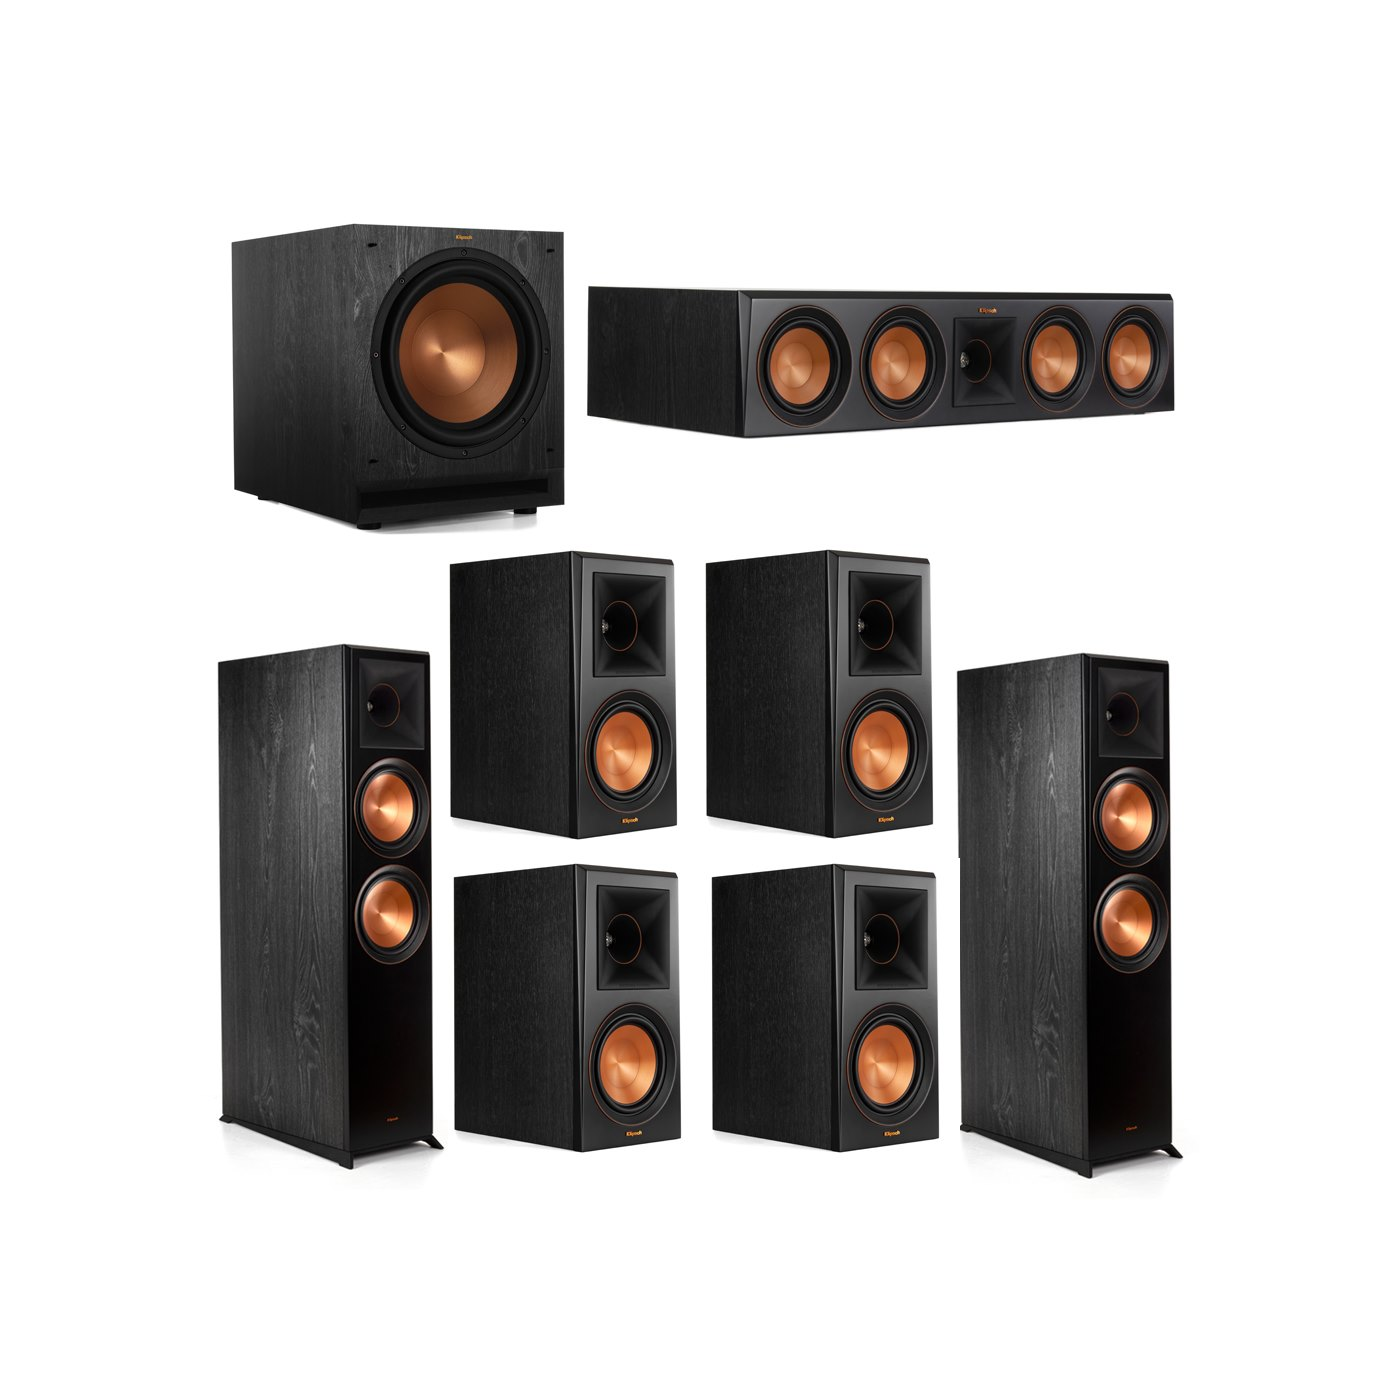 Klipsch 7.1.2 System - 2 RP-8060FA Dolby Atmos Speakers, 1 RP-504C, 4 RP-600M Speakers, 1 SPL-120